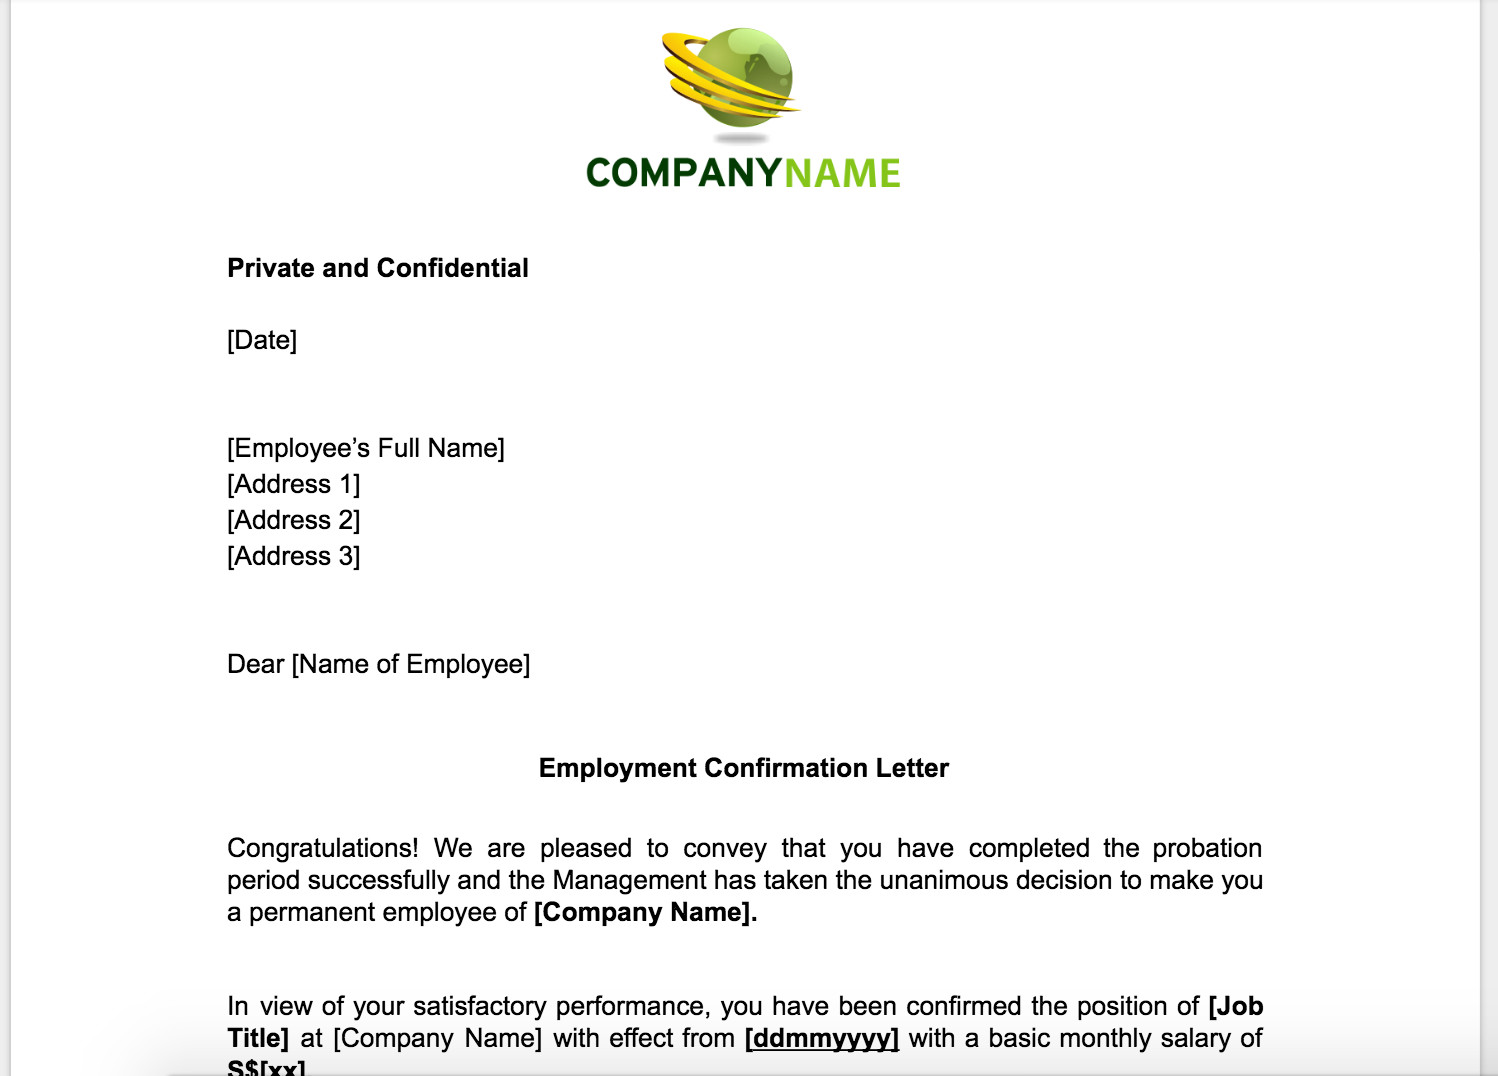 How to Create a Probation Period Letter for New Employees